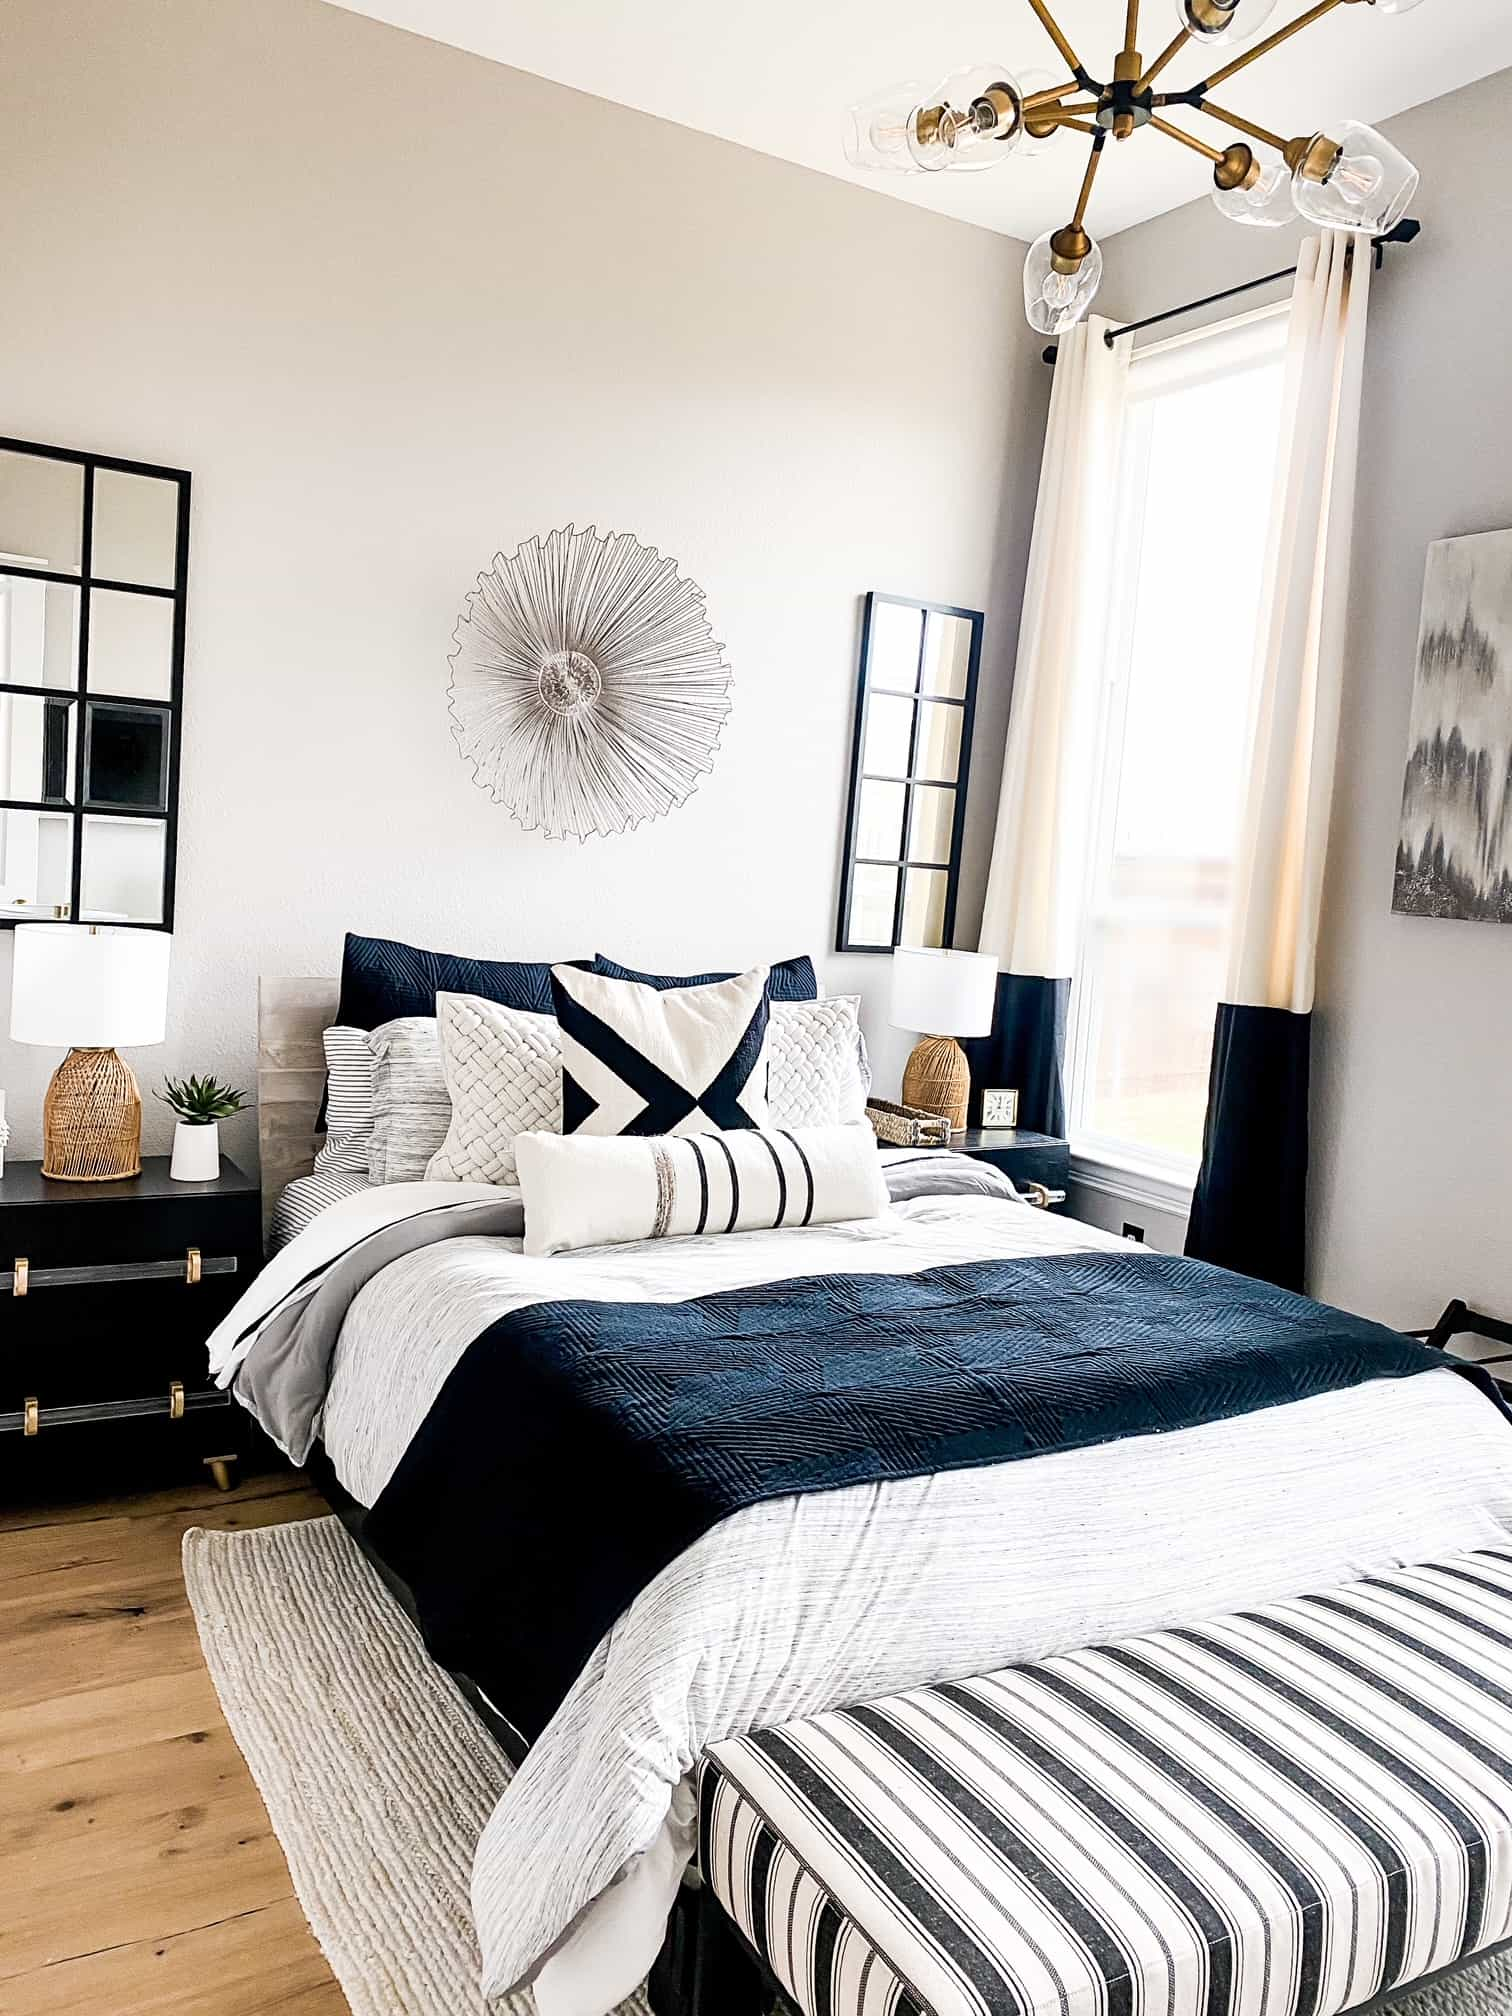 Modern Guest Bedroom by popular Dallas life and style blog, Glamorous Versatility: image of a guest bedroom decorated with black dressers, black and white striped bench, queen size bed with black white, and blue bedding, black and white drapes, modern brass and glass light fixture, woven cream area rug, wicker lamps, and black frame mirrors.